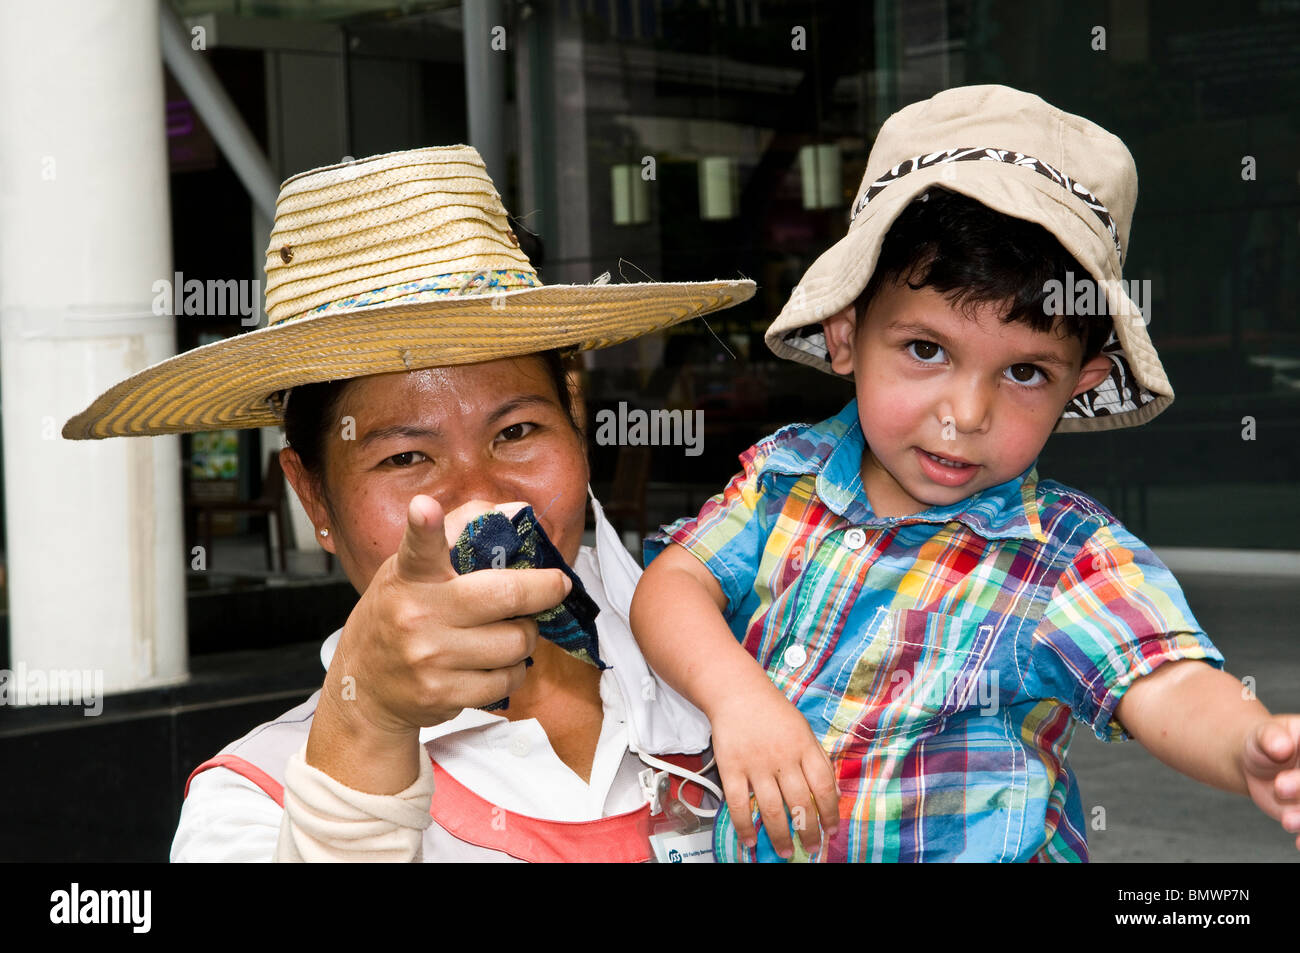 A cute boy in the hands of his nanny. - Stock Image